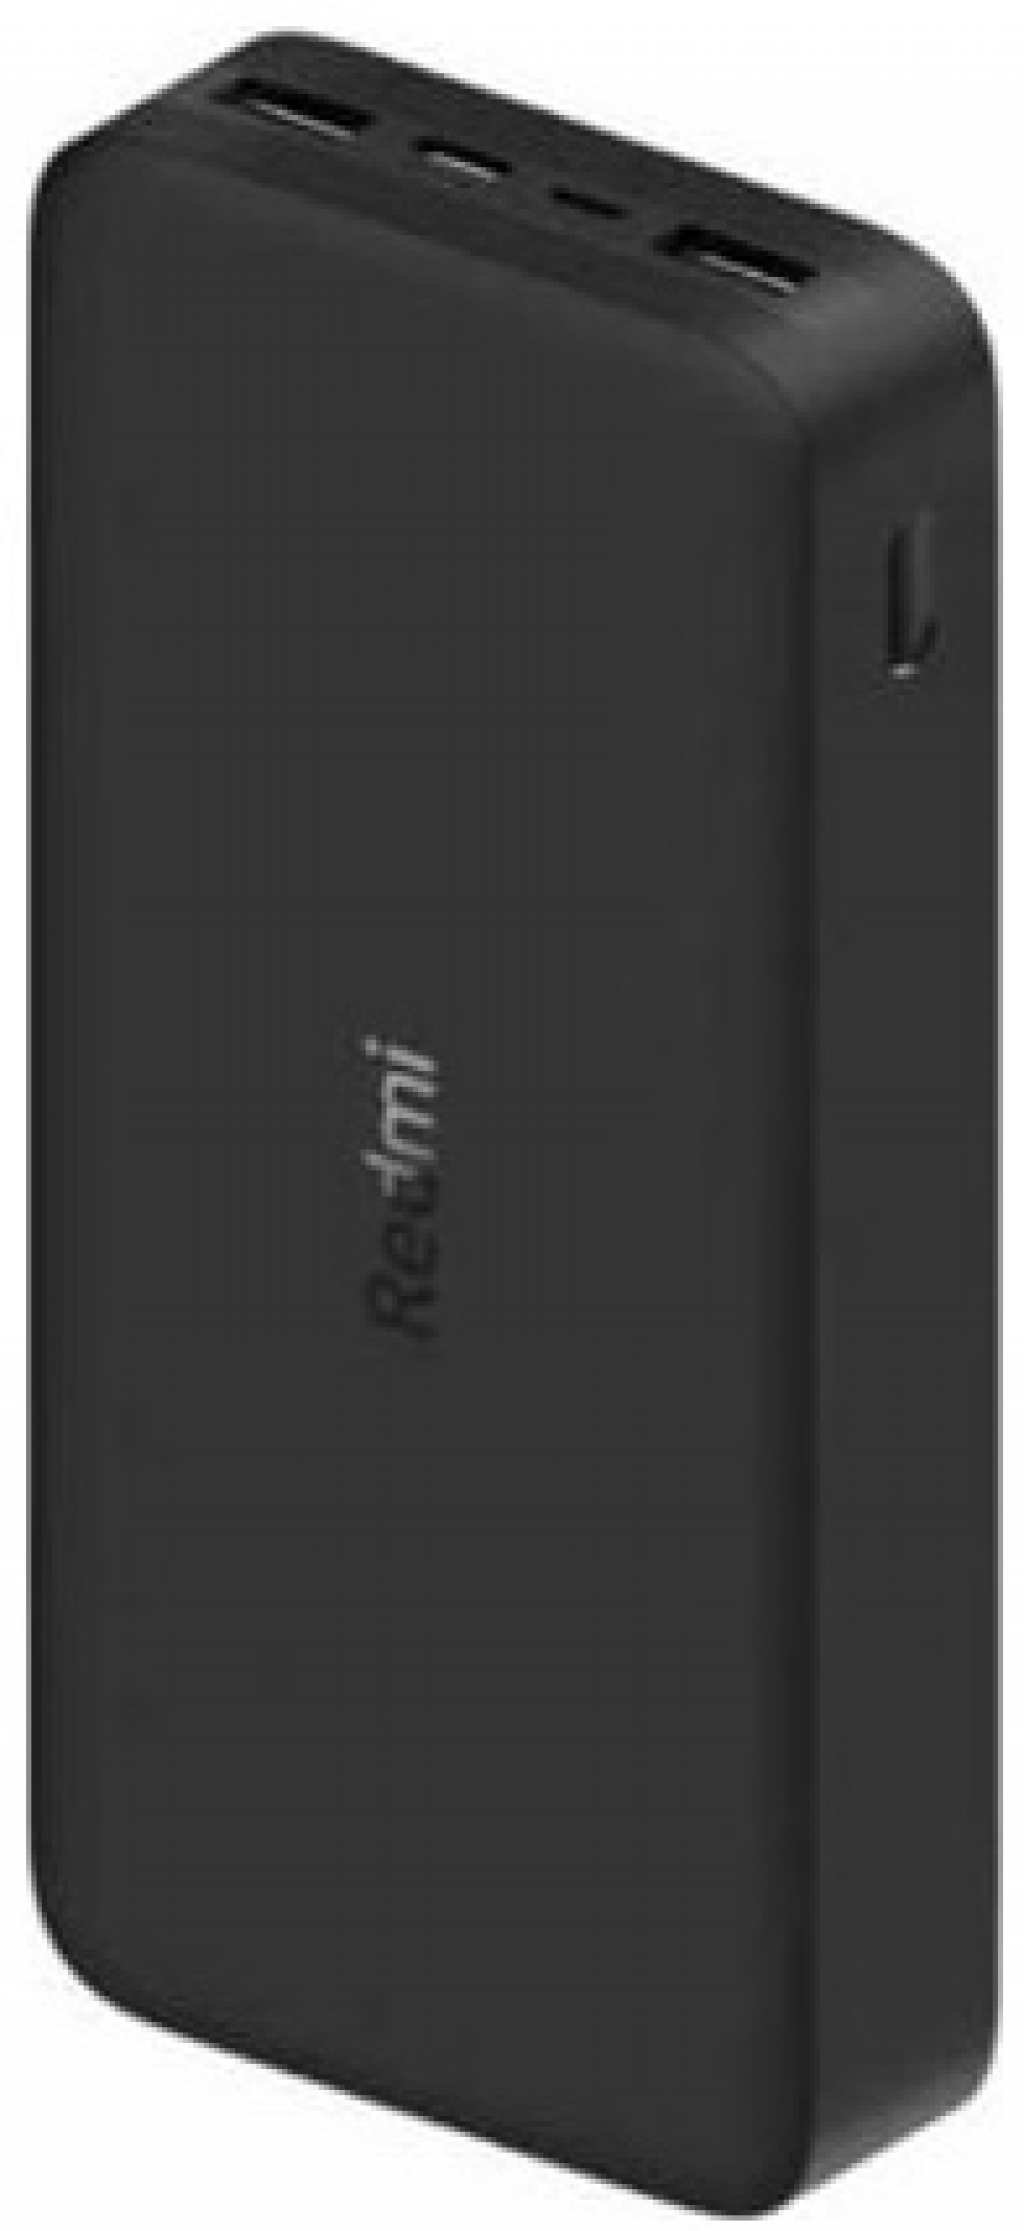 Външна батерия Xiaomi Redmi Power Bank 20 000 mAh 18W Fast Charger Black